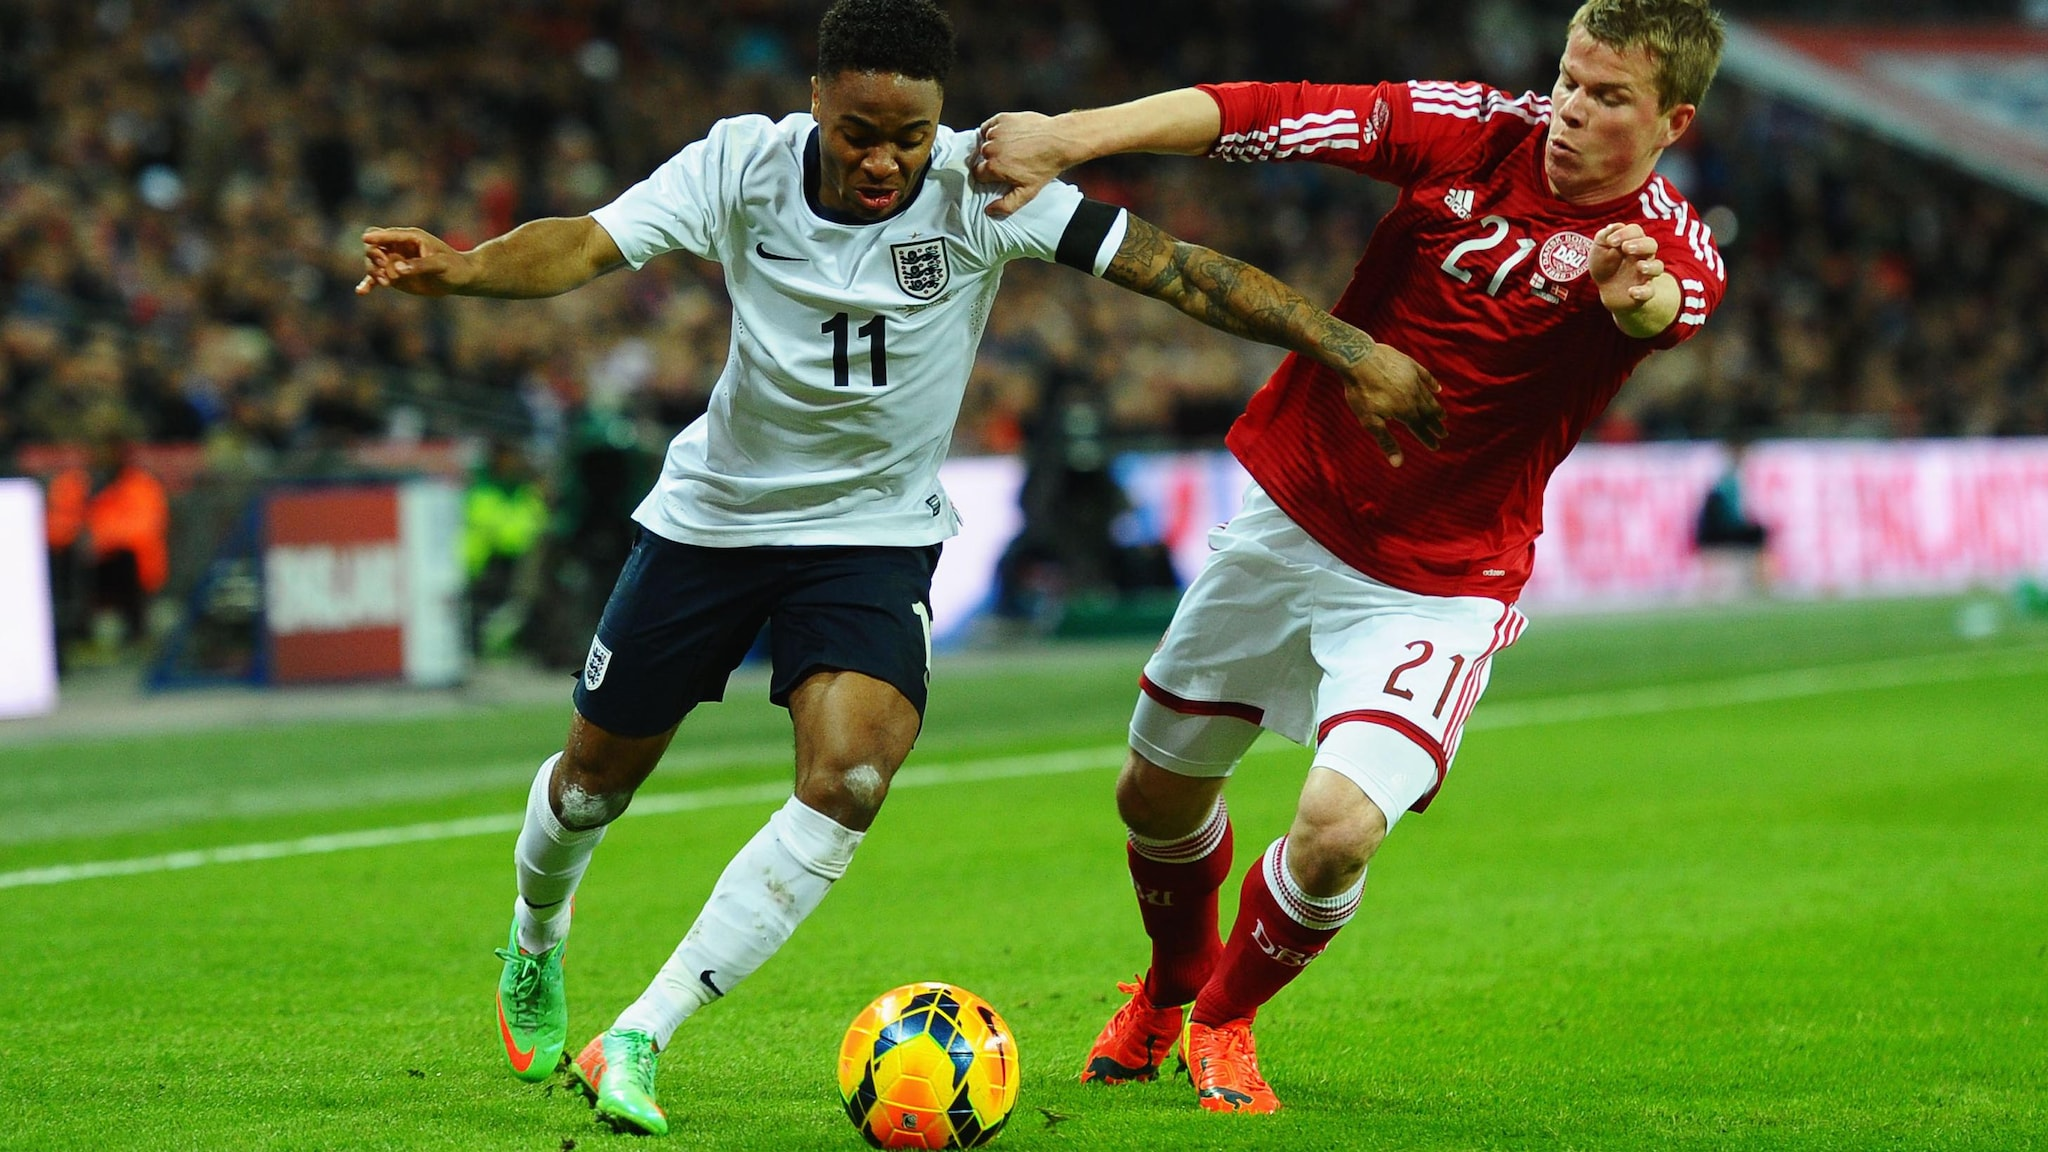 Denmark vs England Nations League preview: where to watch, team news